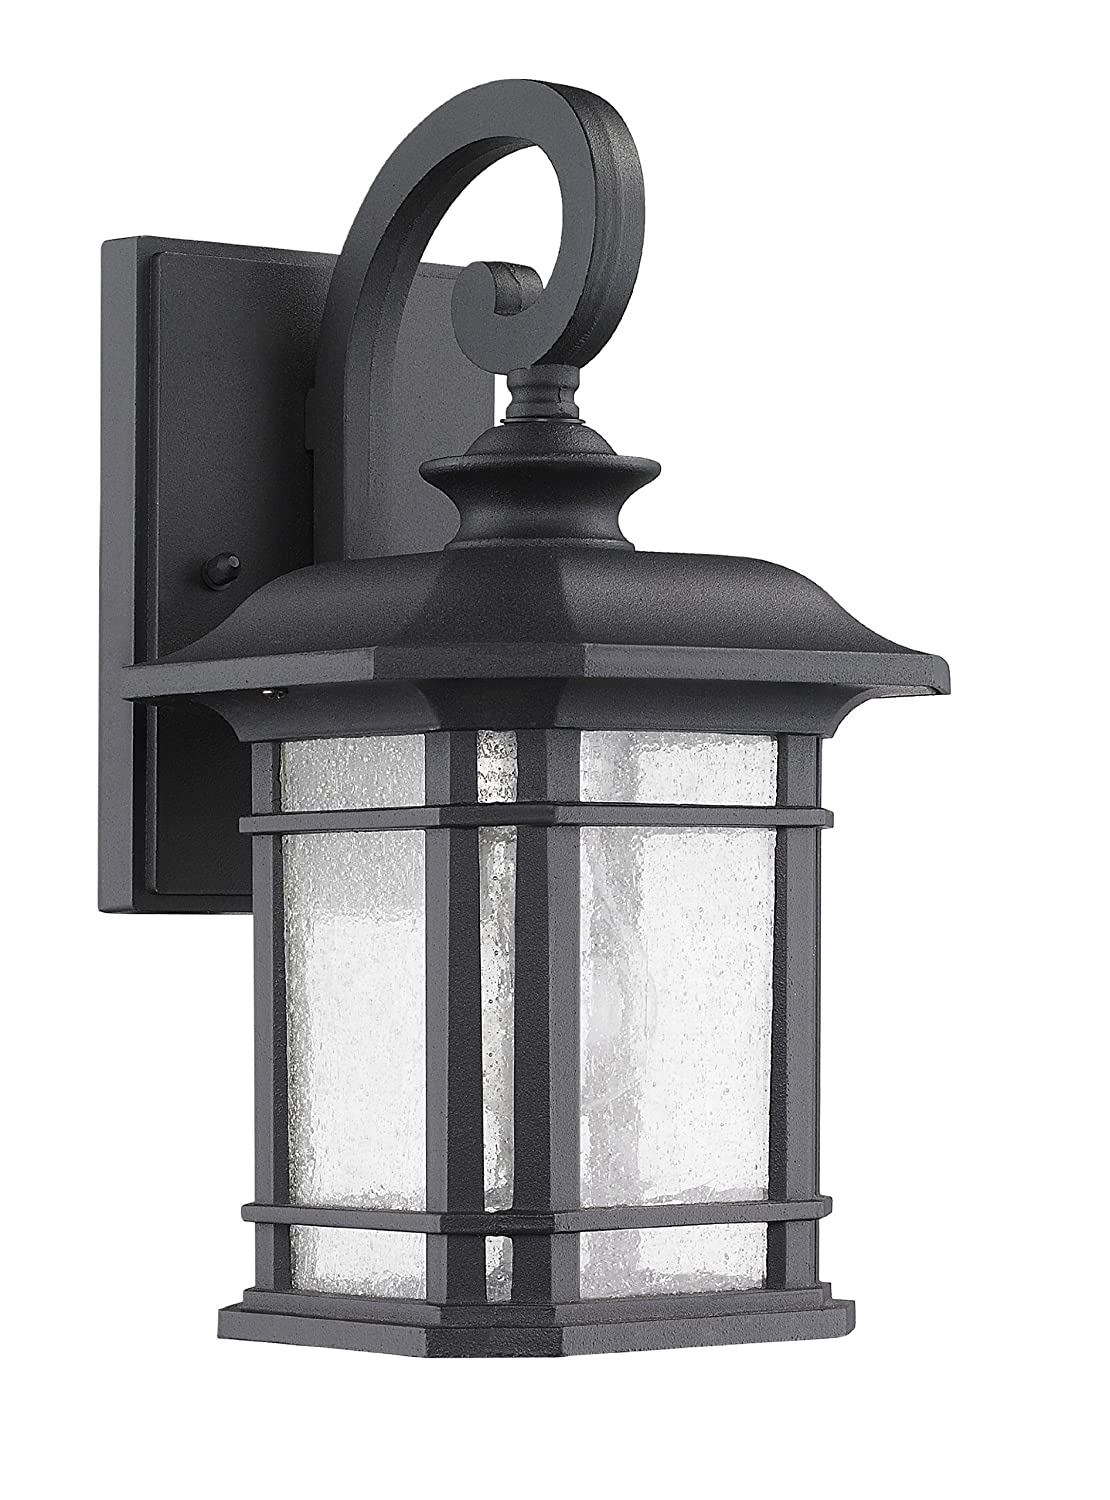 Chloe lighting ch22021bk17 od1franklin transitional 1 light black chloe lighting ch22021bk17 od1franklin transitional 1 light black outdoor wall sconce 17 height home outdoor electric lighting amazon aloadofball Images